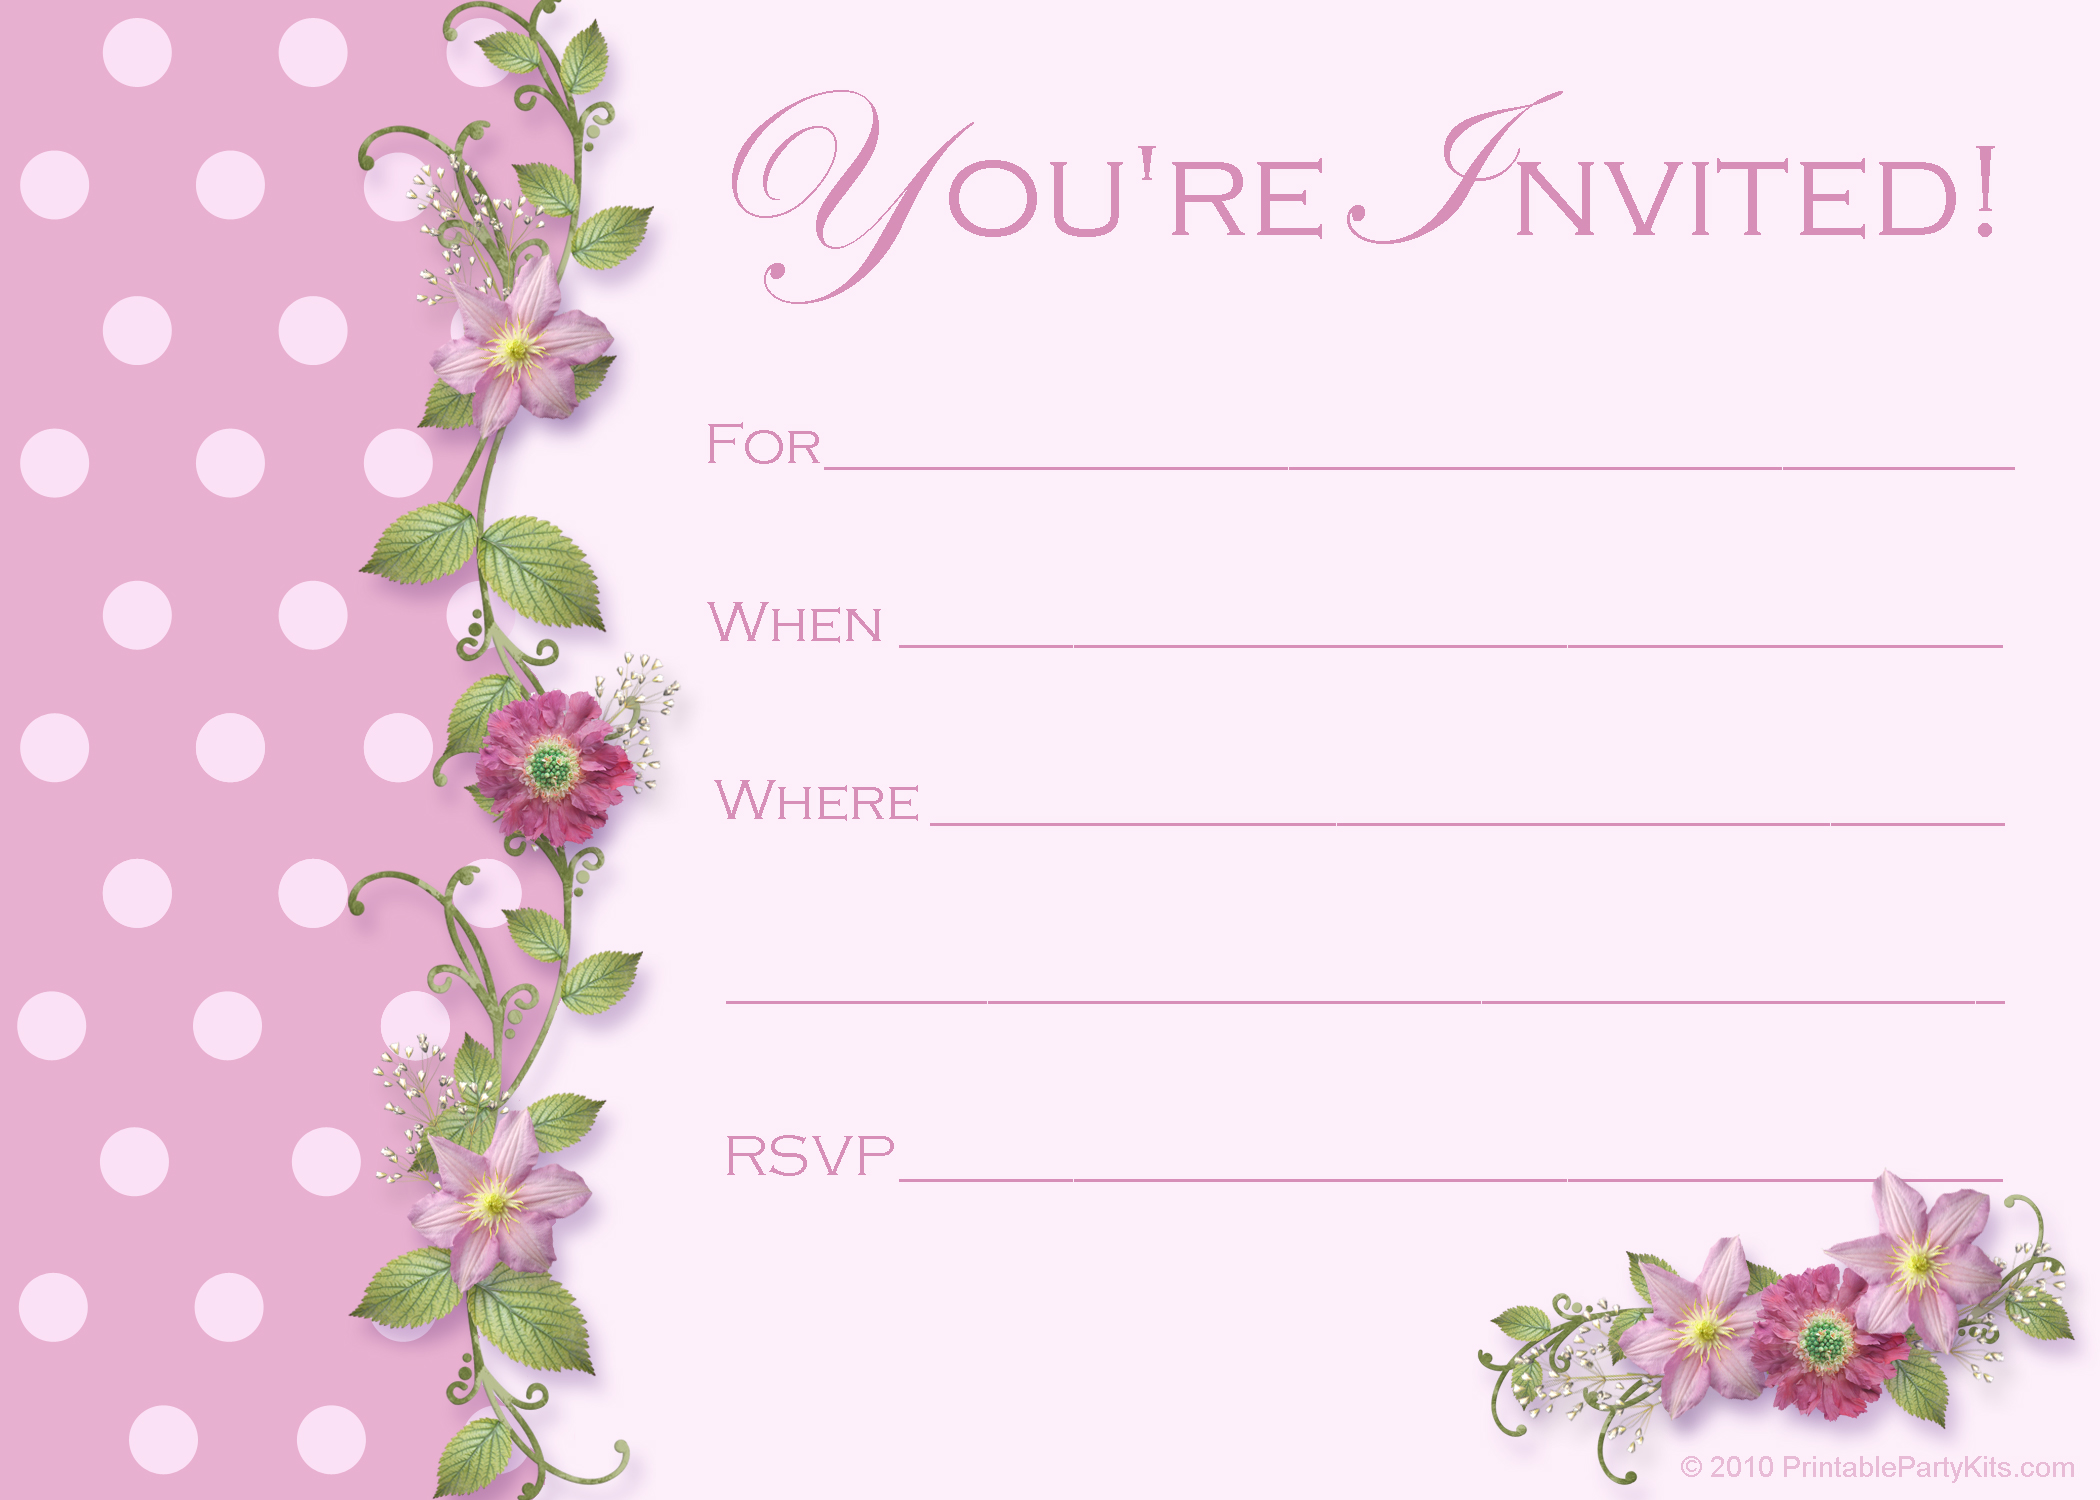 birthday invitation template free download - Etame.mibawa.co